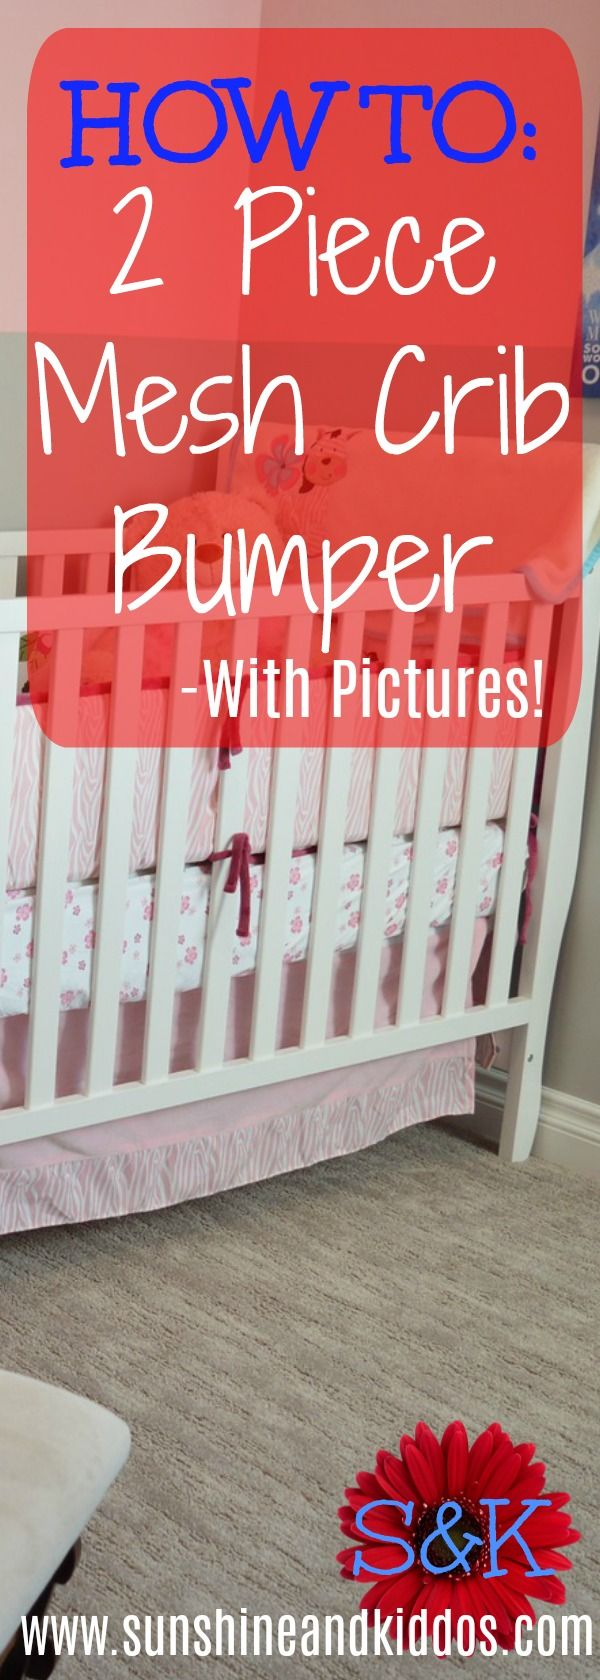 How to put on mesh crib bumper with this step by step guide. Reduce SIDS with a breathable mesh crib bumper!